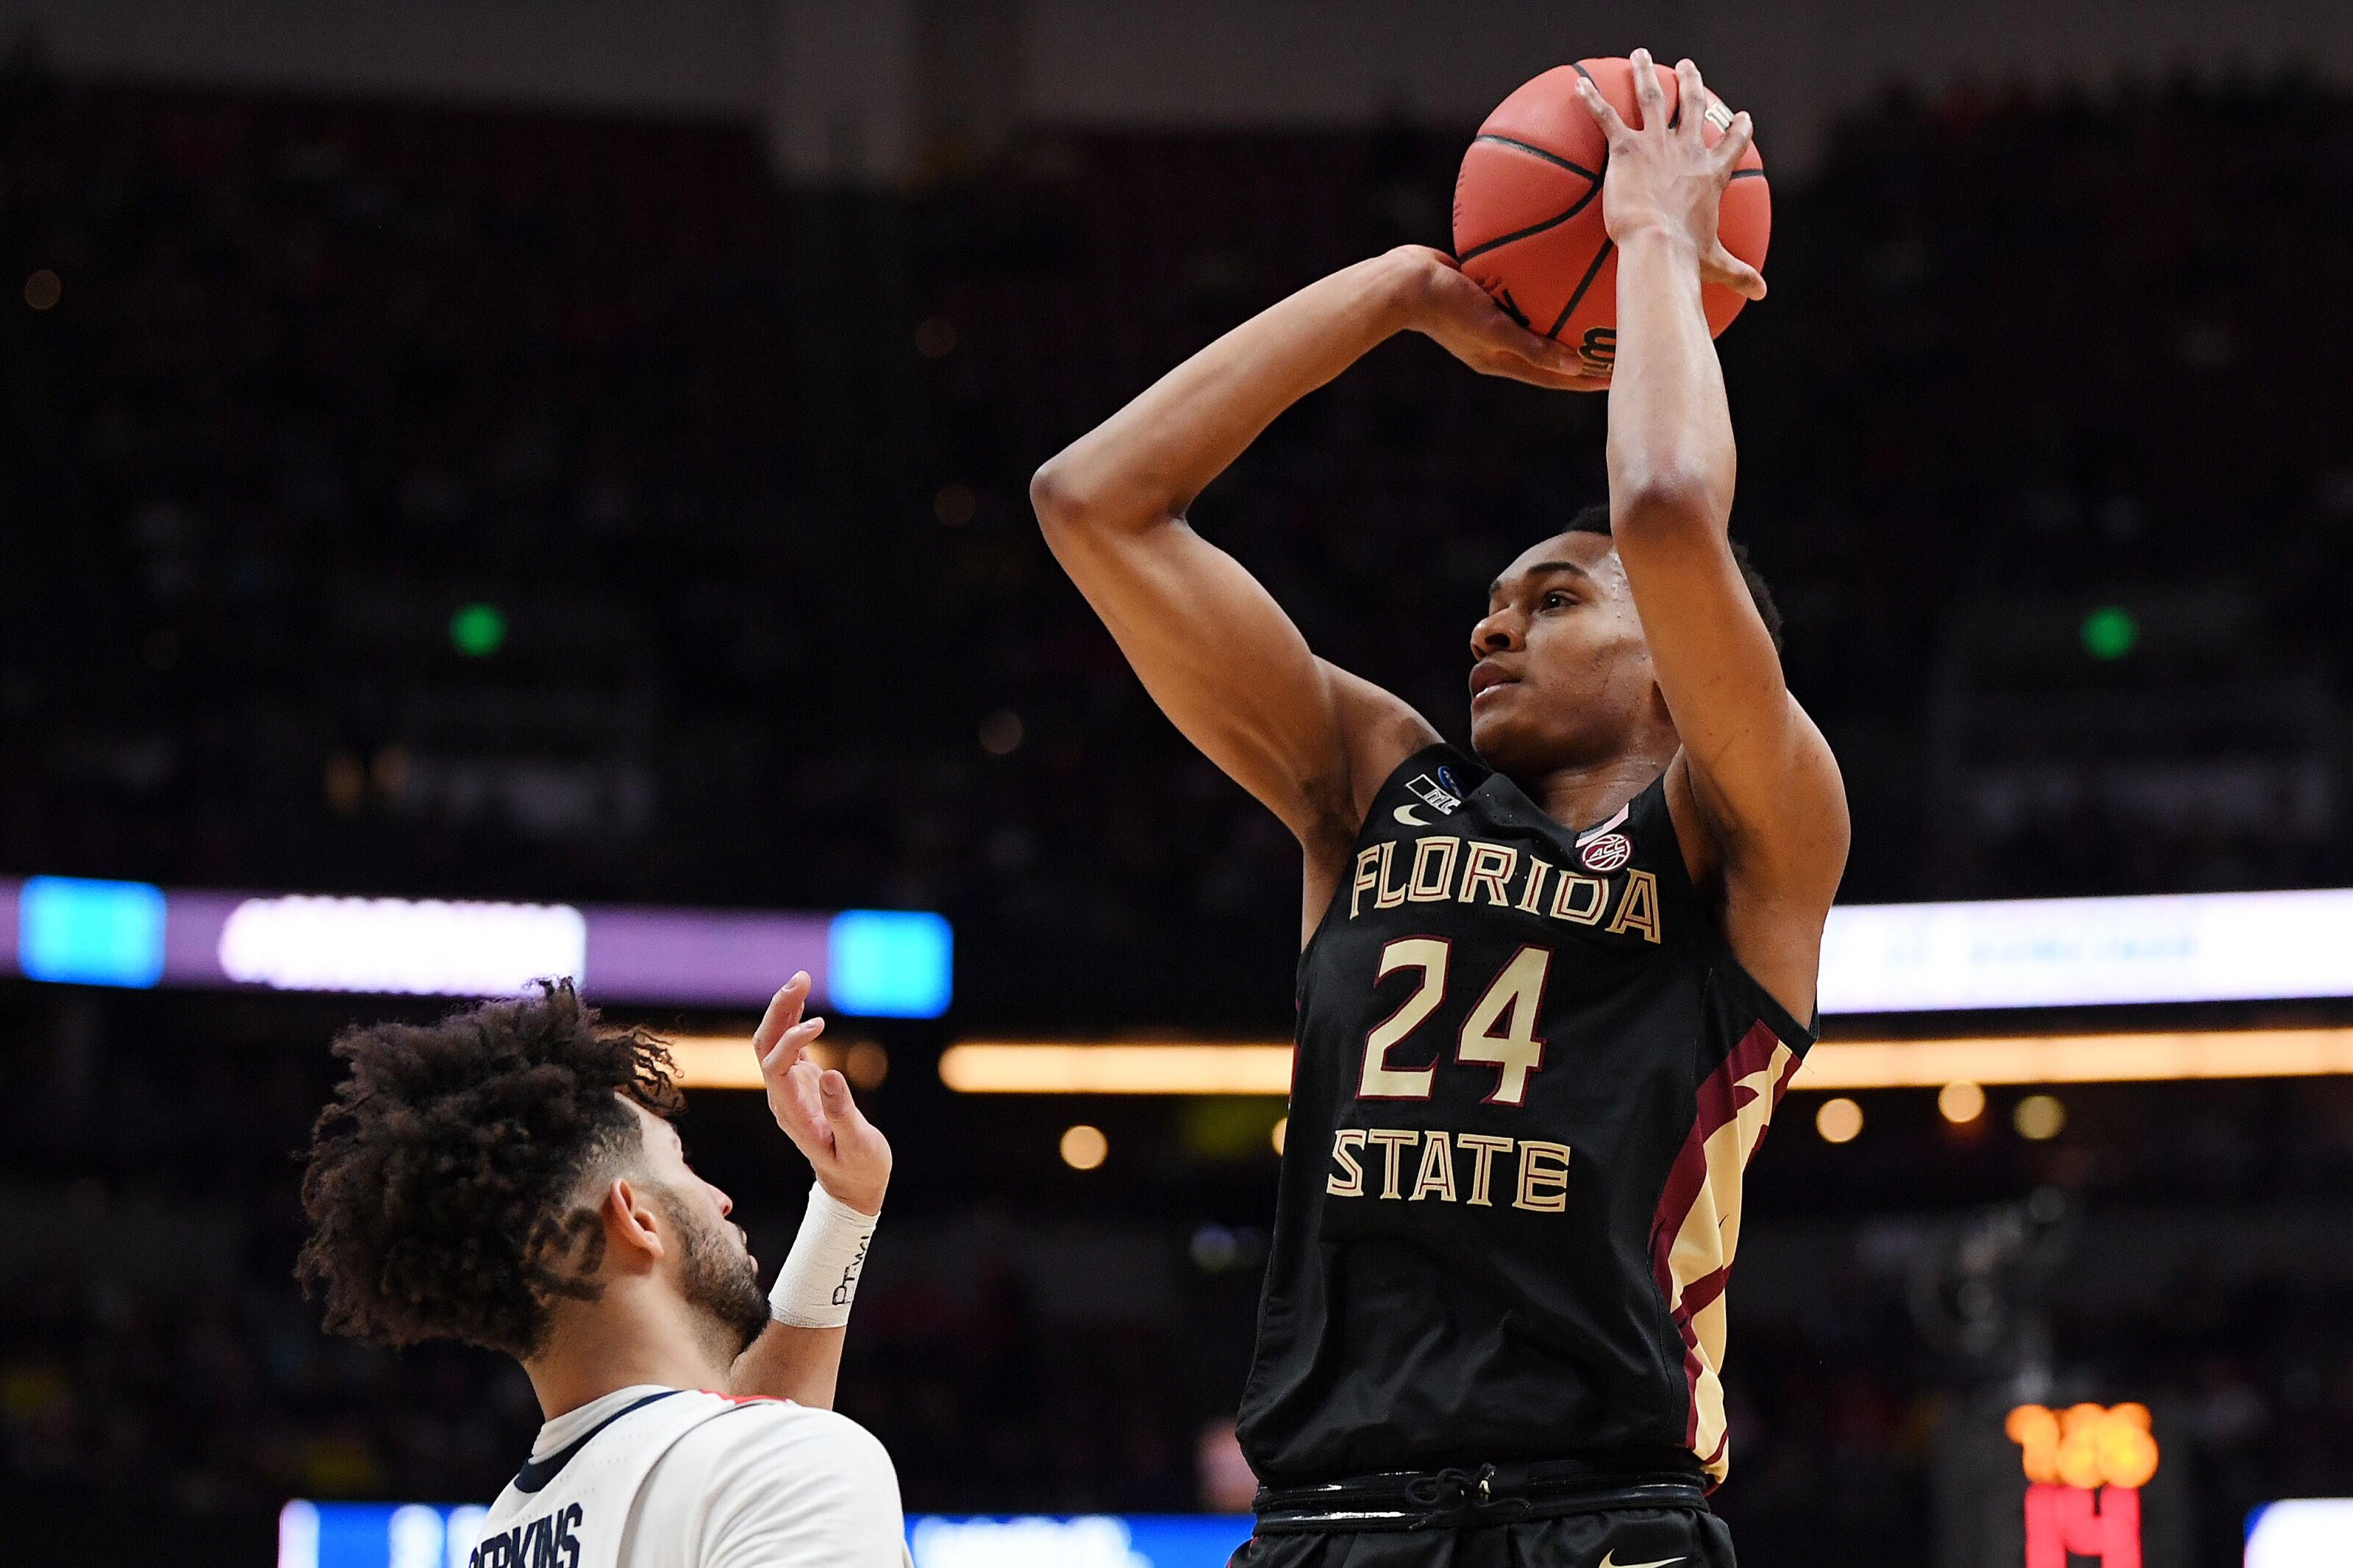 FSU basketball: Noles need strong performance against Virginia